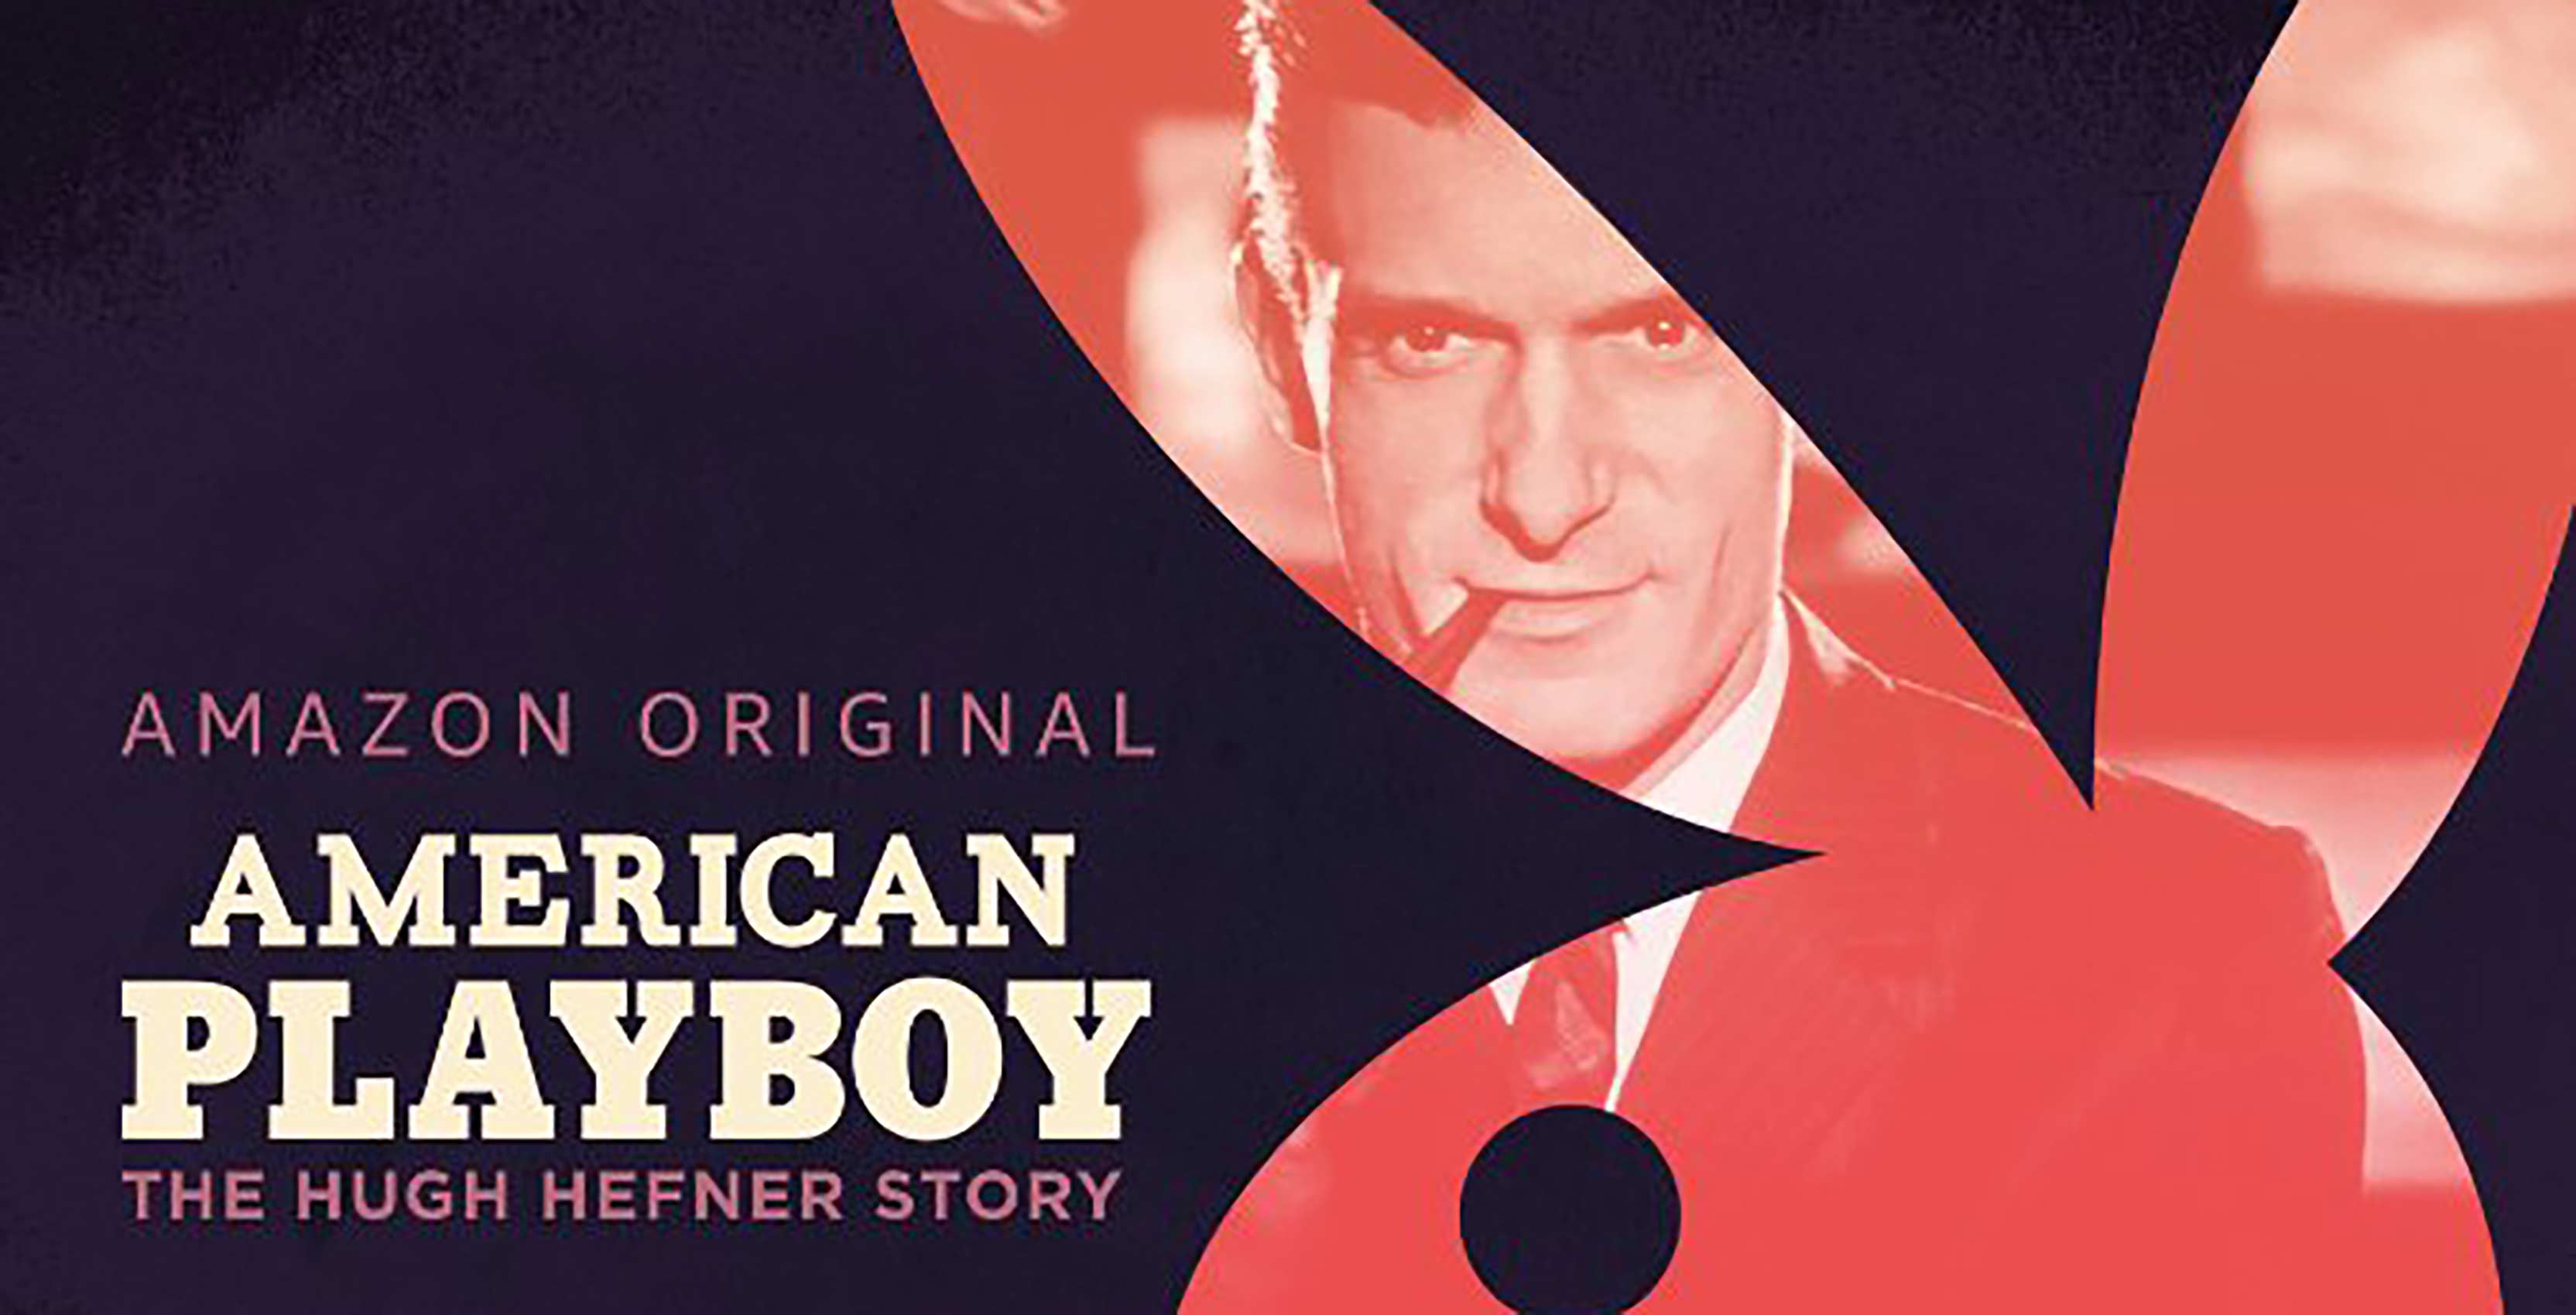 American Playboy: The Hugh Hefner Story an Amazon Prime Video original